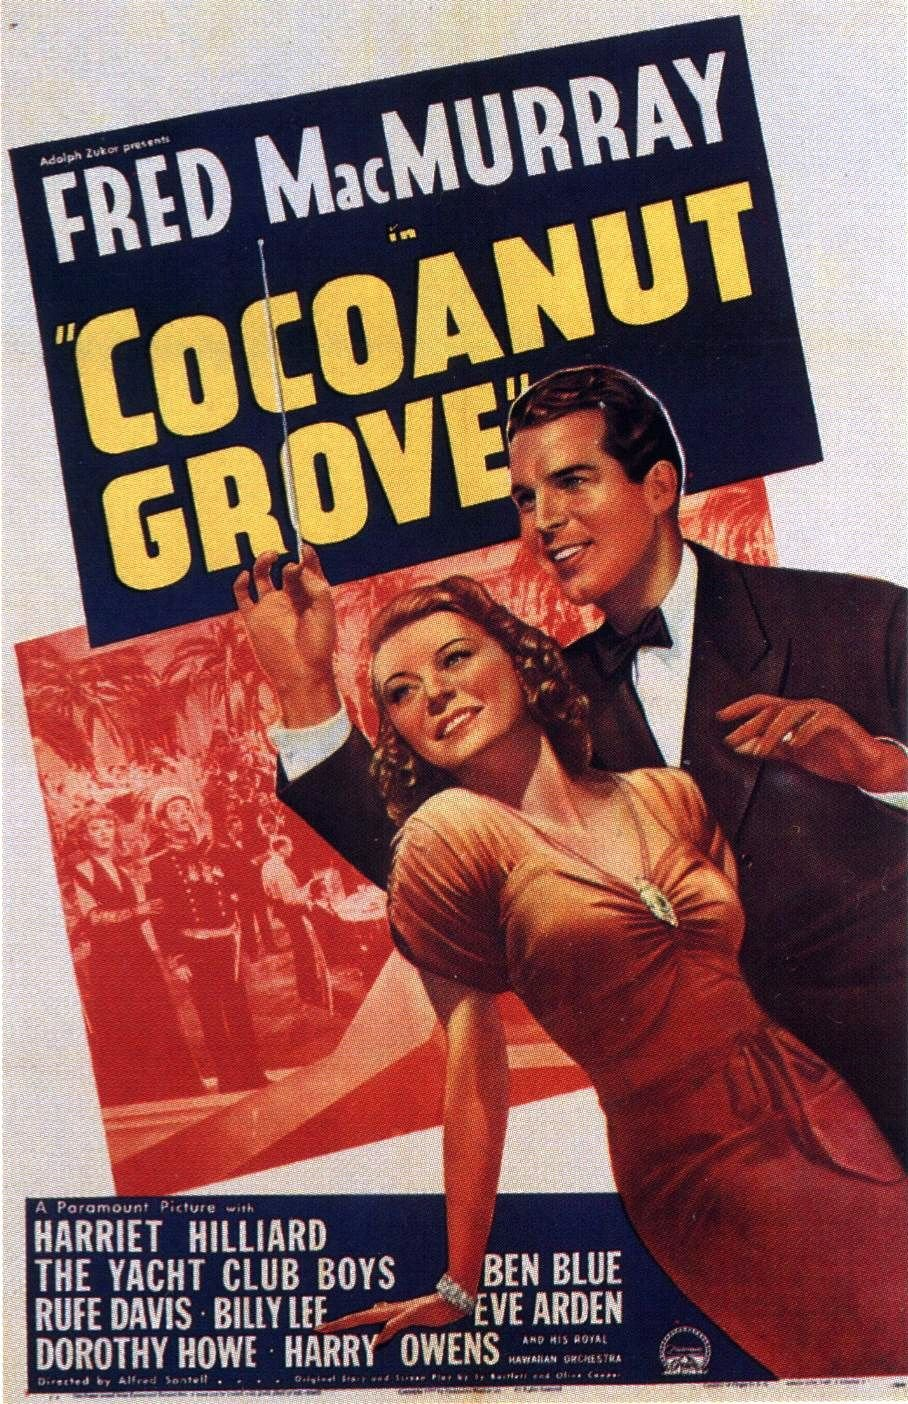 Harriet Nelson and Fred MacMurray in Cocoanut Grove (1938)